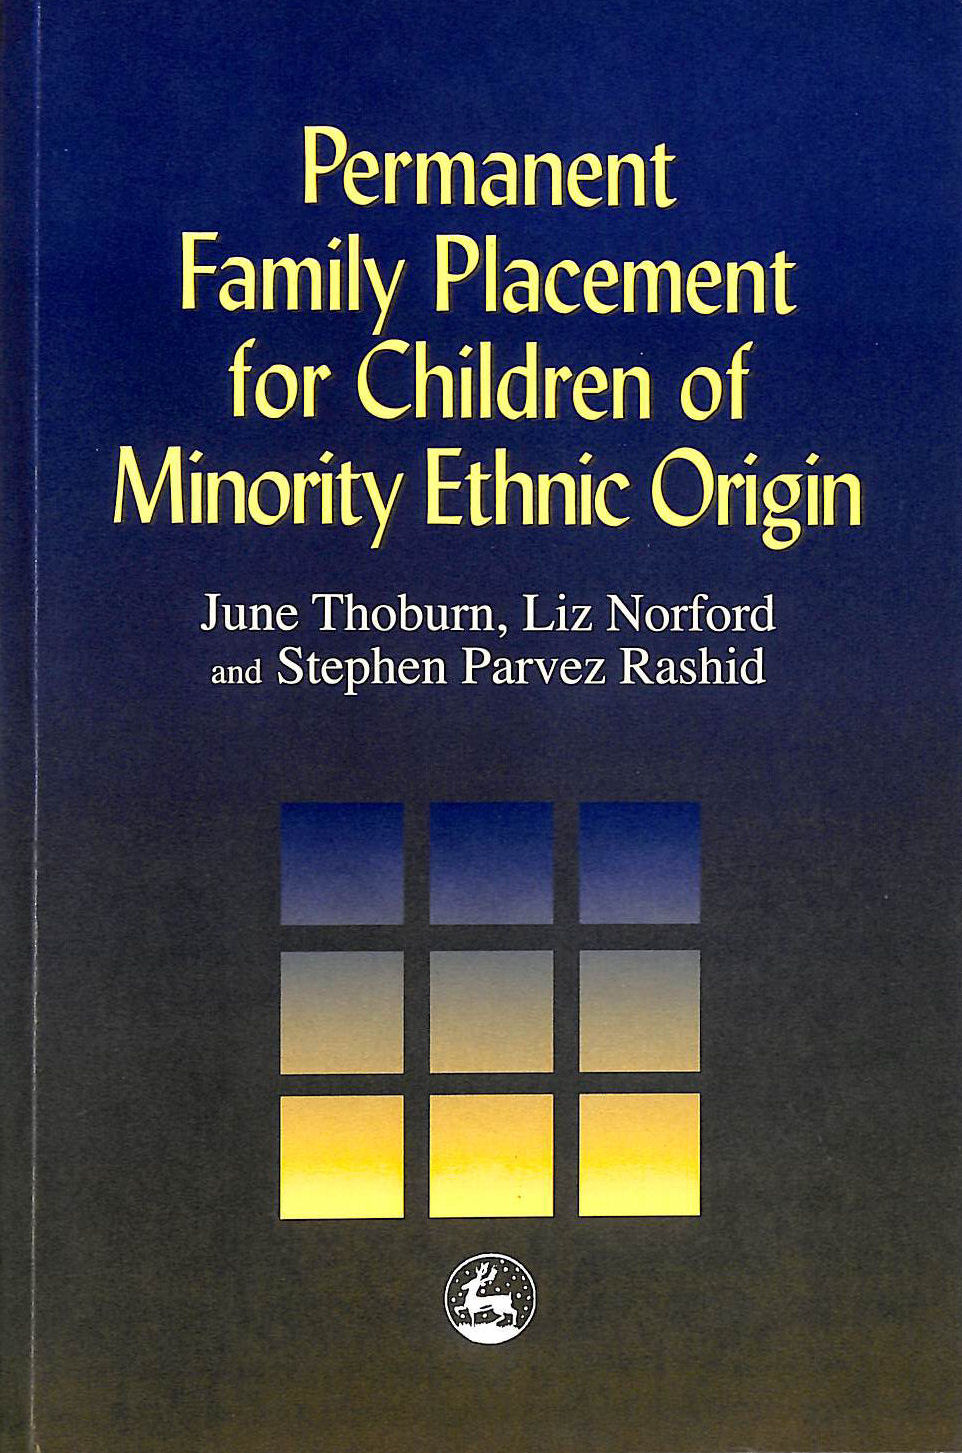 Image for Permanent Family Placement for Children of Minority Ethnic Origin